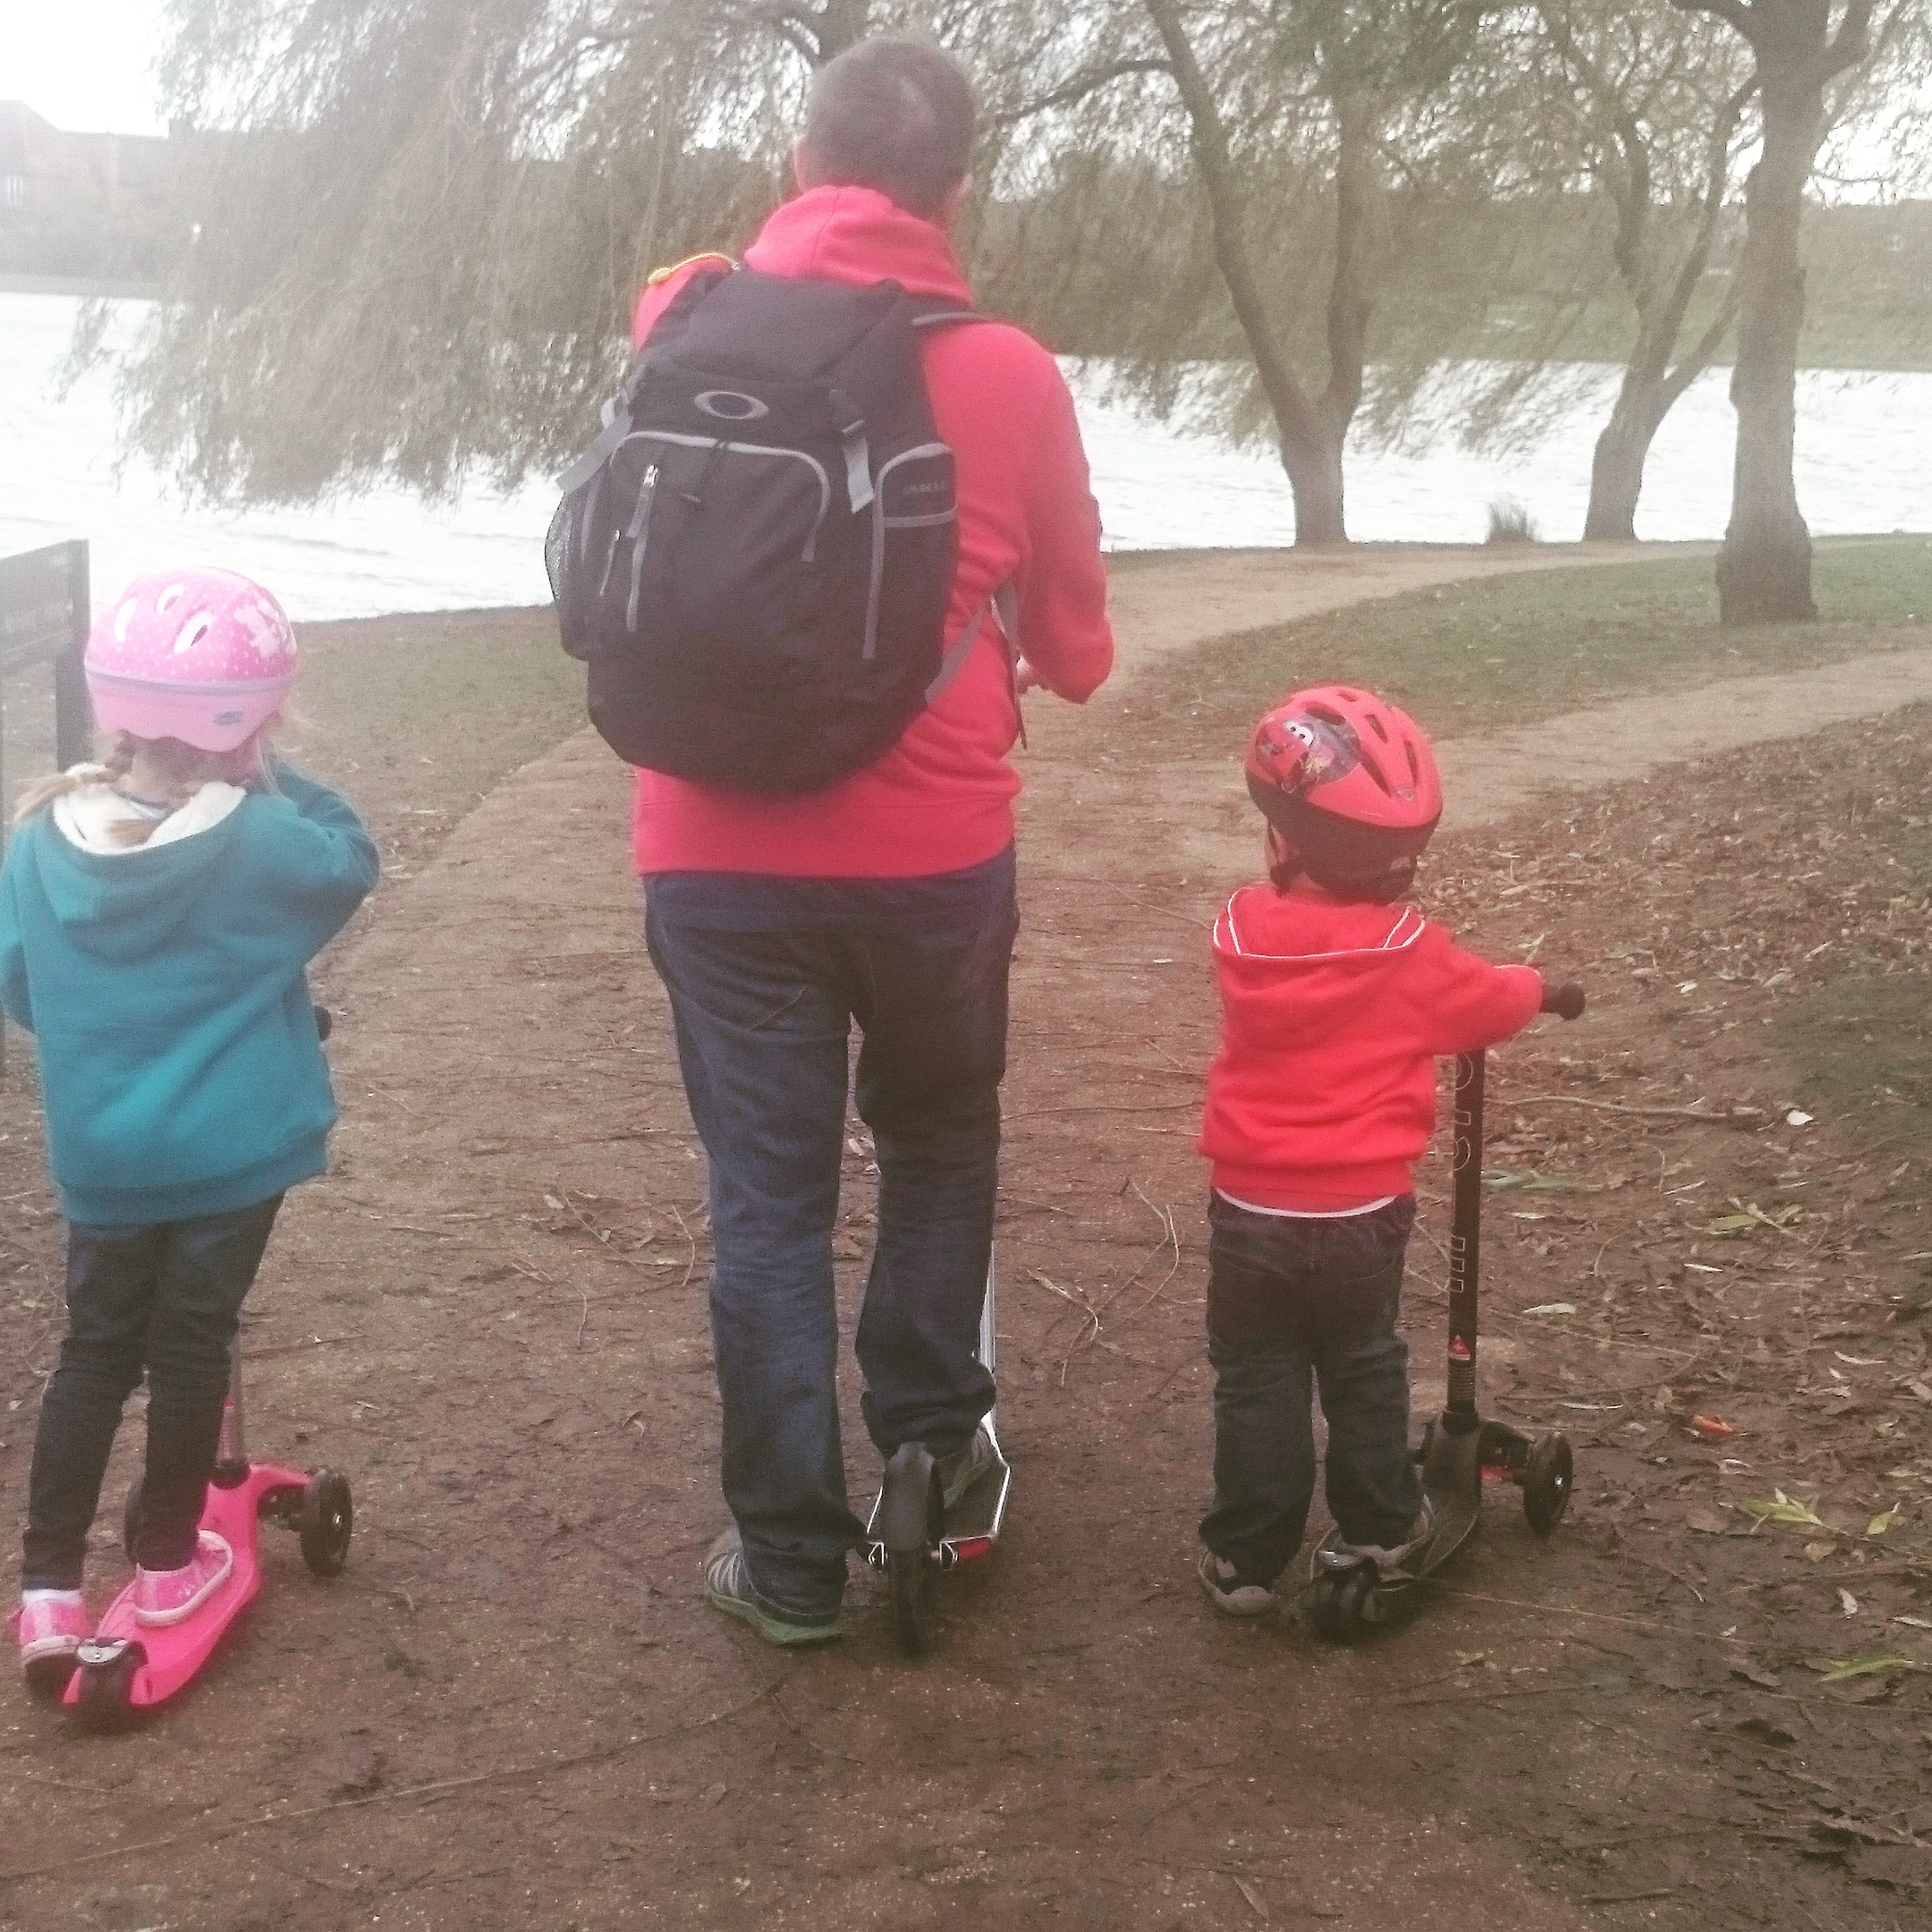 Family scooting!